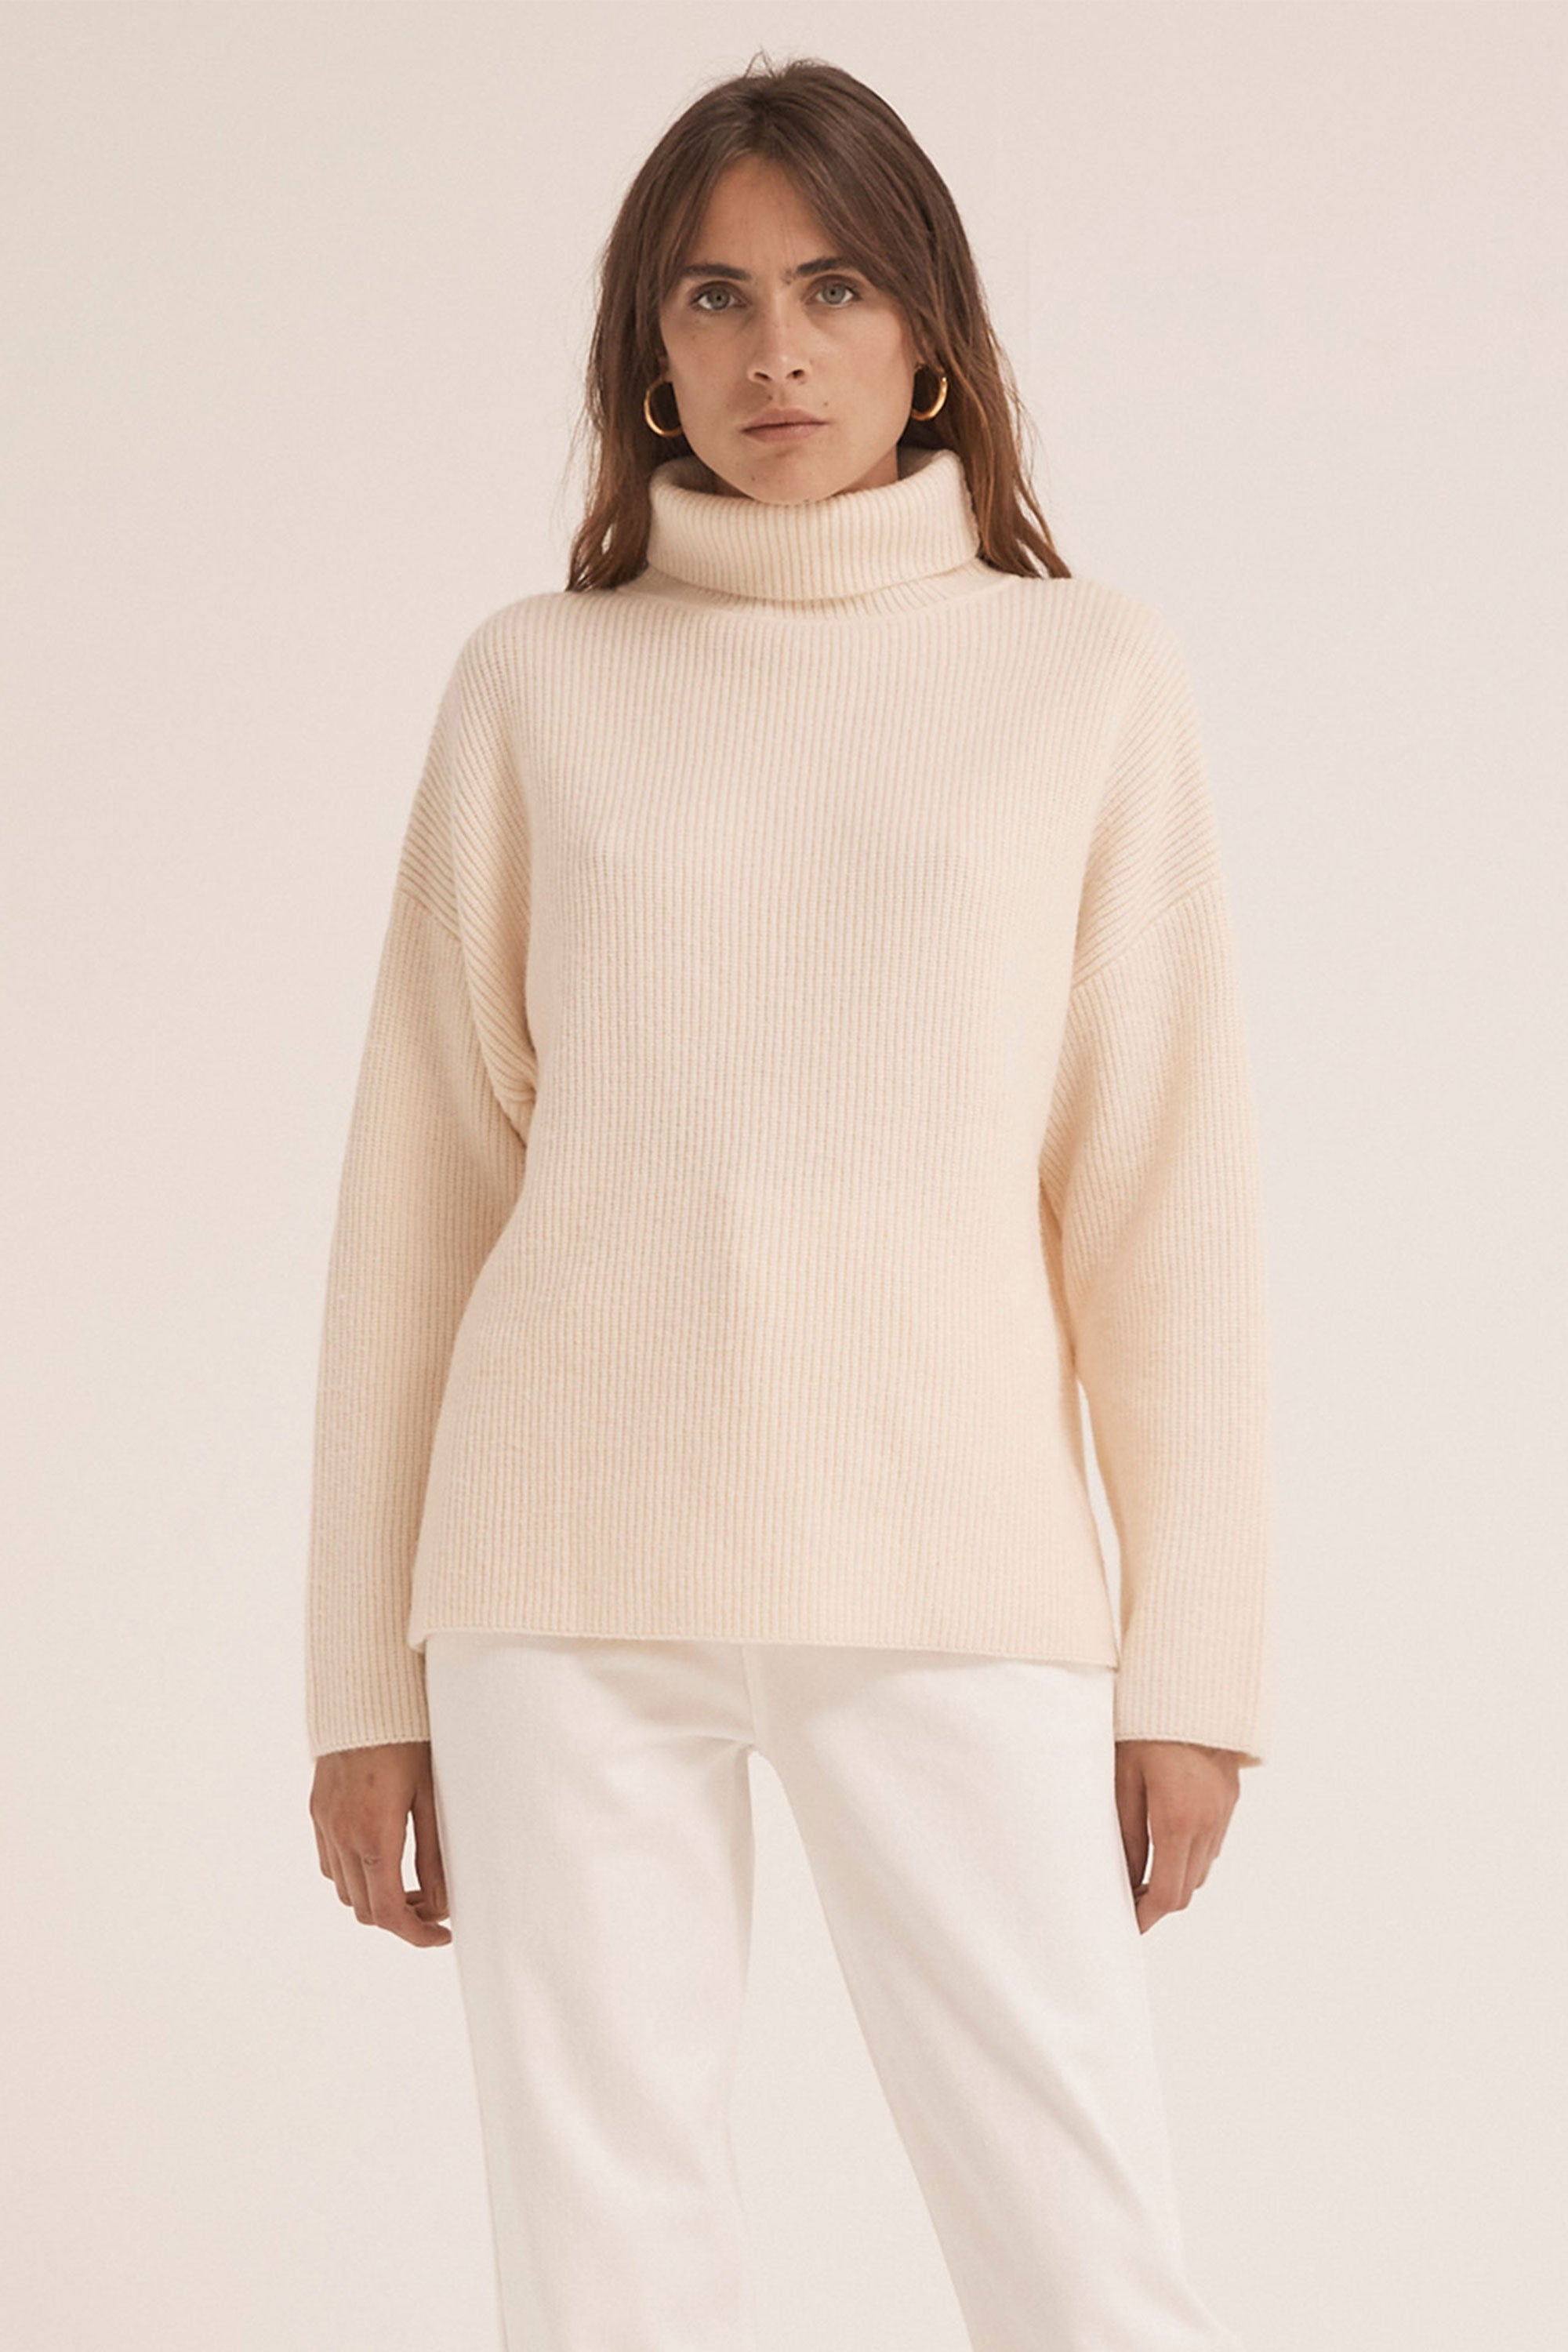 OVERSIZED KNIT TURTLENECK | CREAM